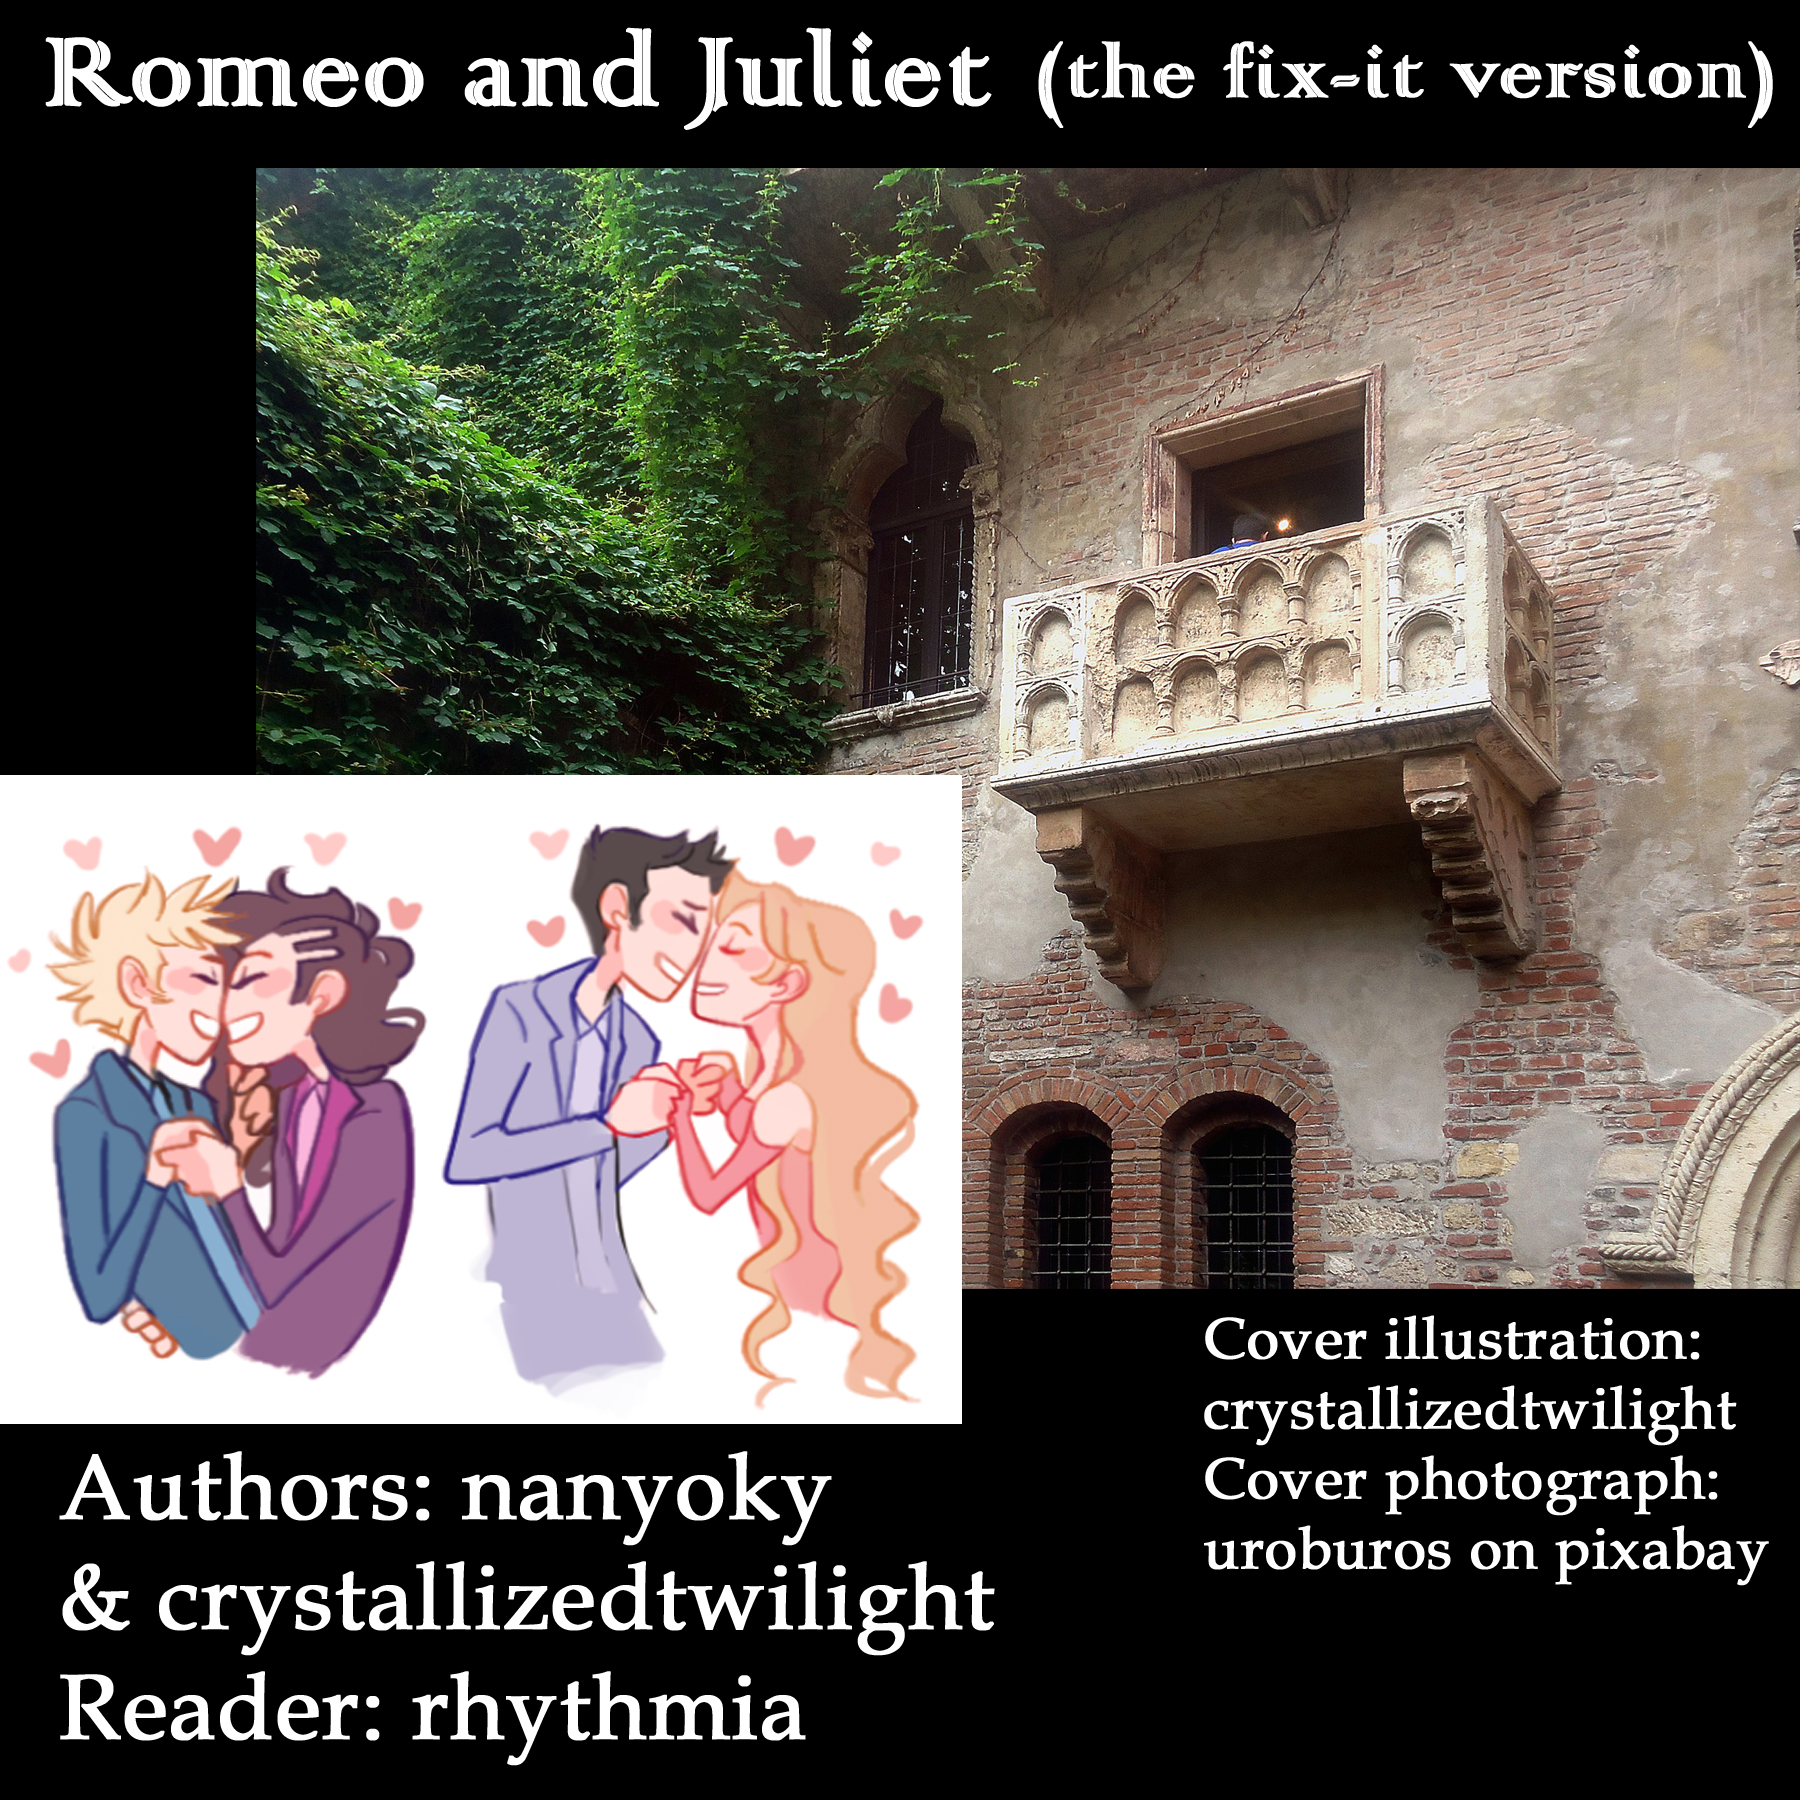 Photograph of Juliet's balcony in Verona. Superimposed on the bottom corner is an illustration of Benvolio and Mercutio embracing with little hearts, and Romeo and Juliet embracing with little hearts. Top text reads: Romeo and Juliet (the fix-it version). Bottom left text reads: Authors: nanyoky and crystallizedtwilight, Reader rhythmia. Bottom right text reads: Cover illustration: crystallizedtwilight, cover photograph: uroburos on pixabay